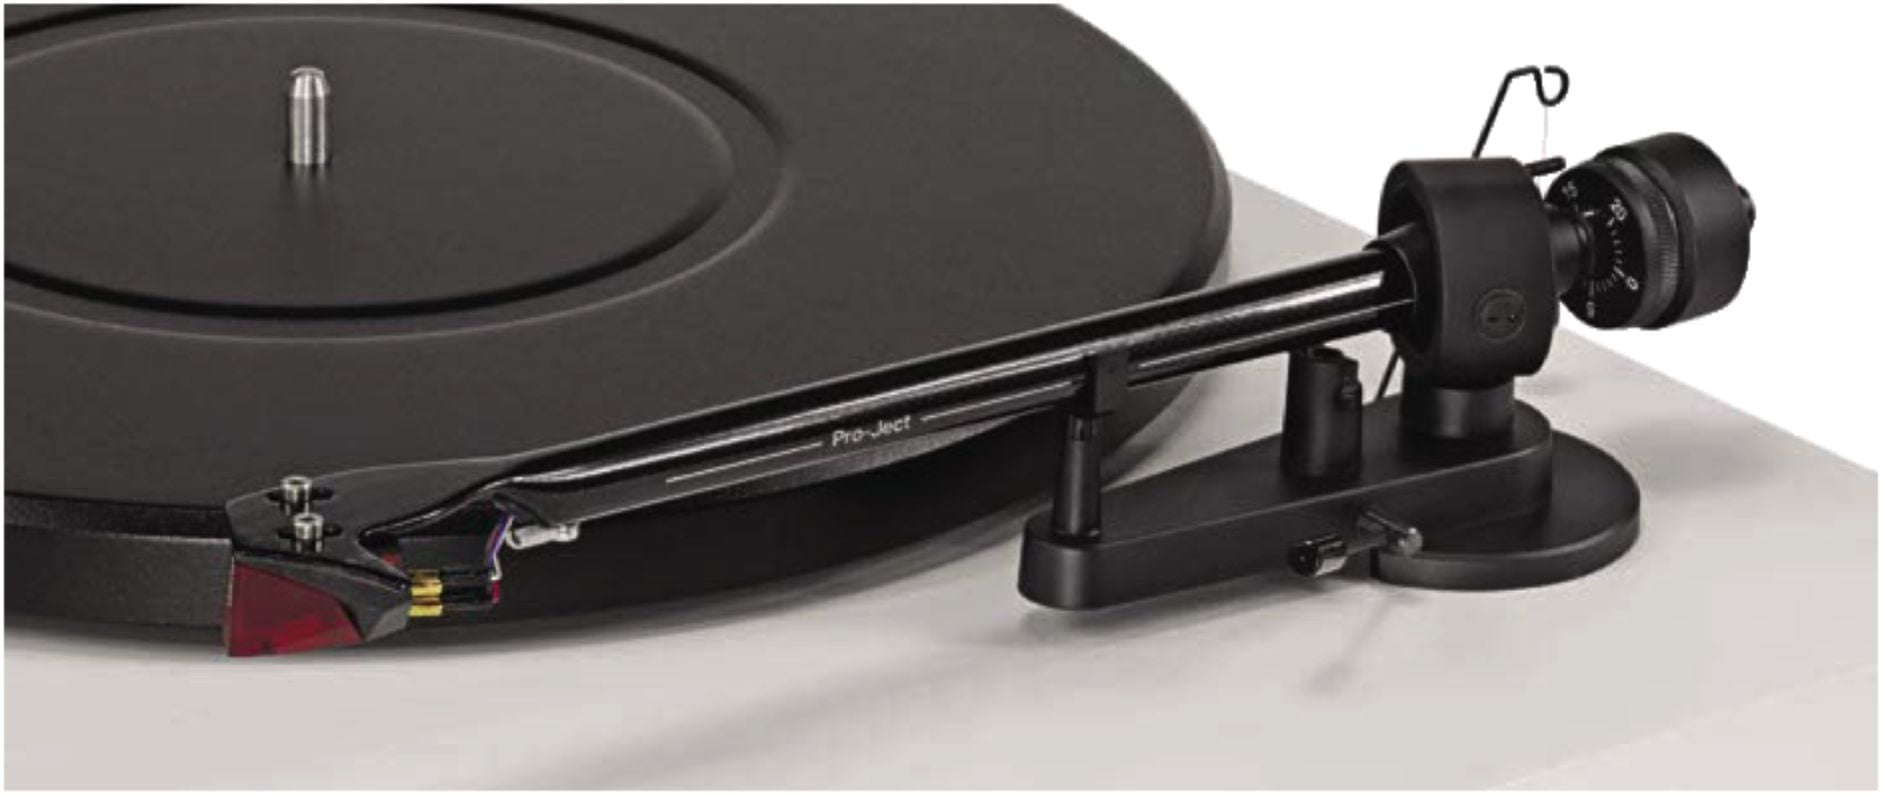 pro-ject debut carbon evo review